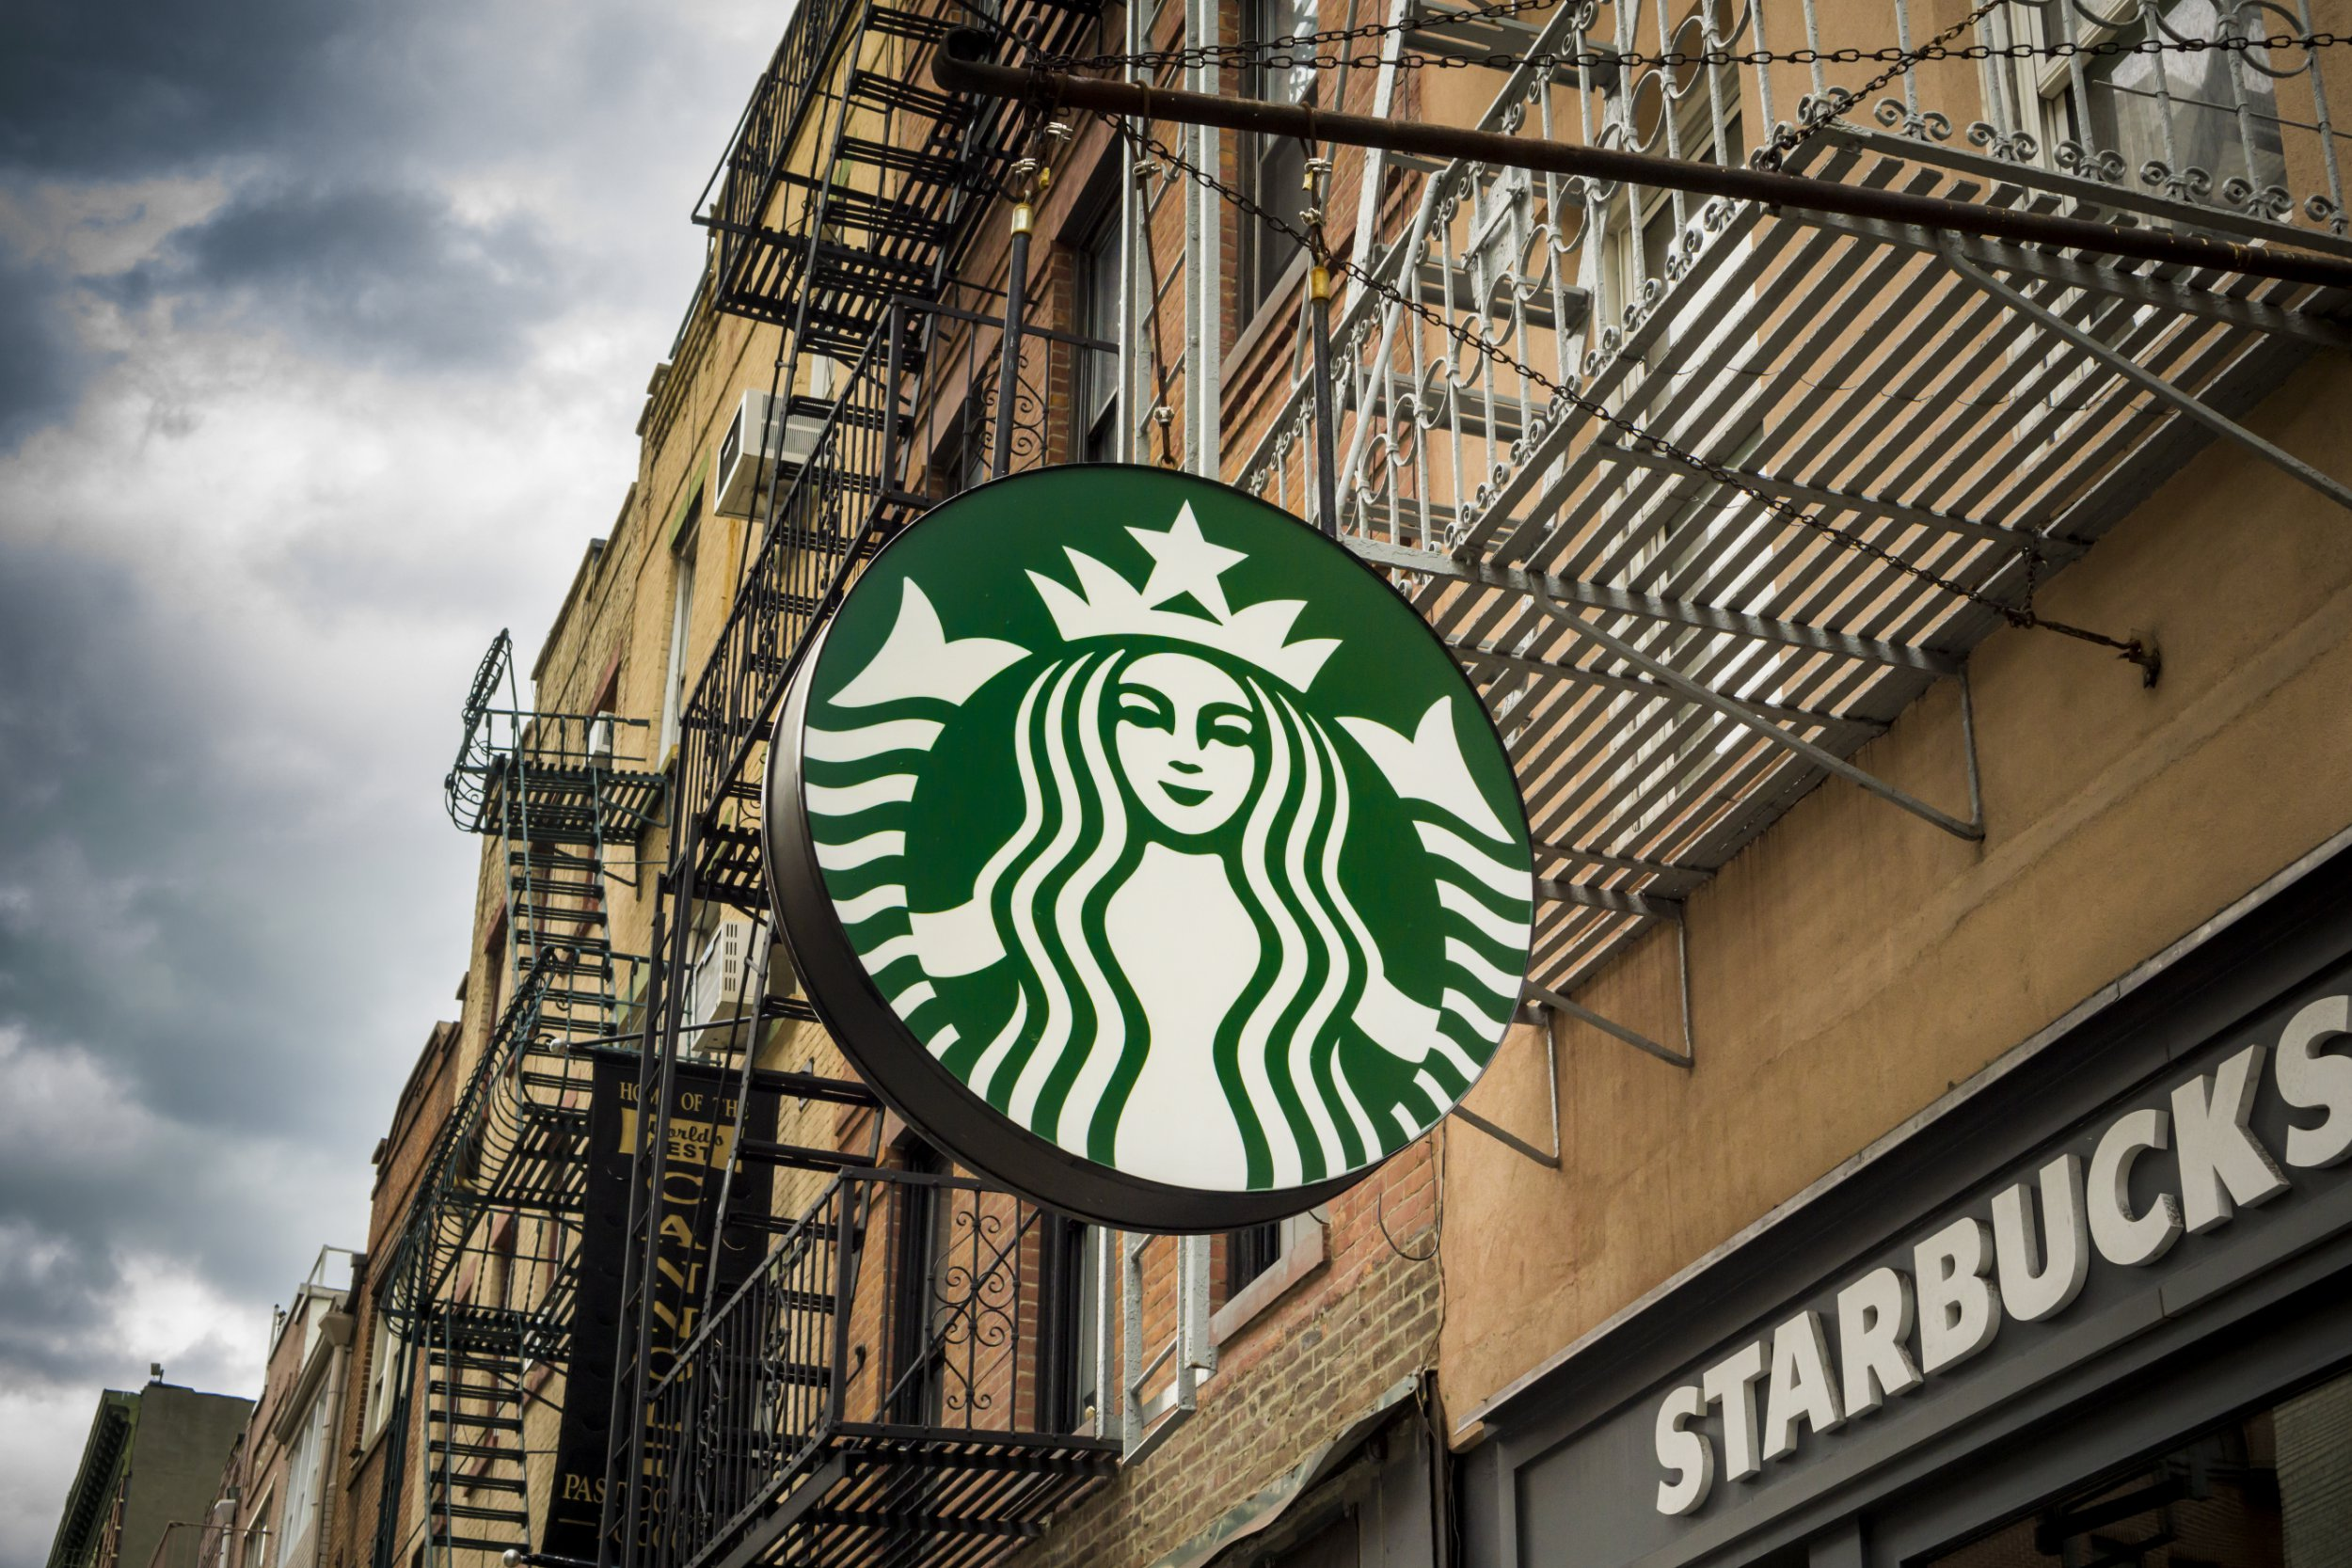 You don't have to buy anything in Starbucks to be able to use to their loo anymore